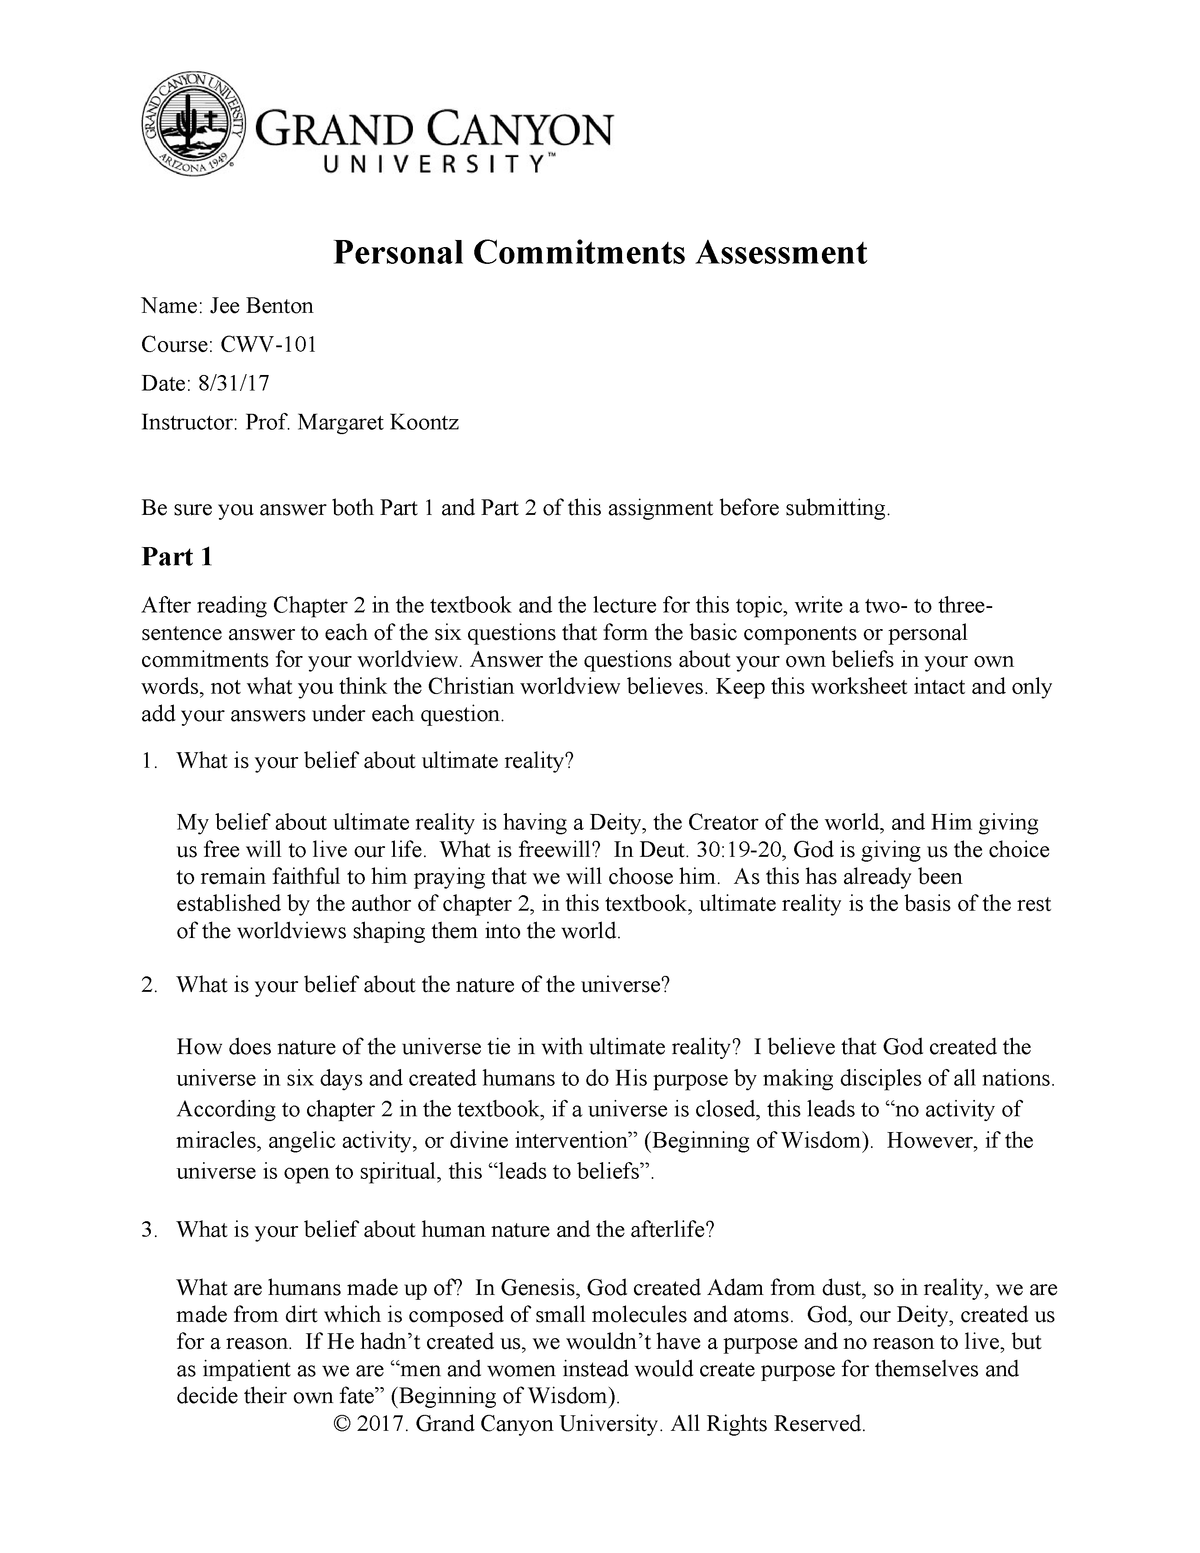 CWV 101 301 RS T1Personal Commitments Assessment - CWV-106HN